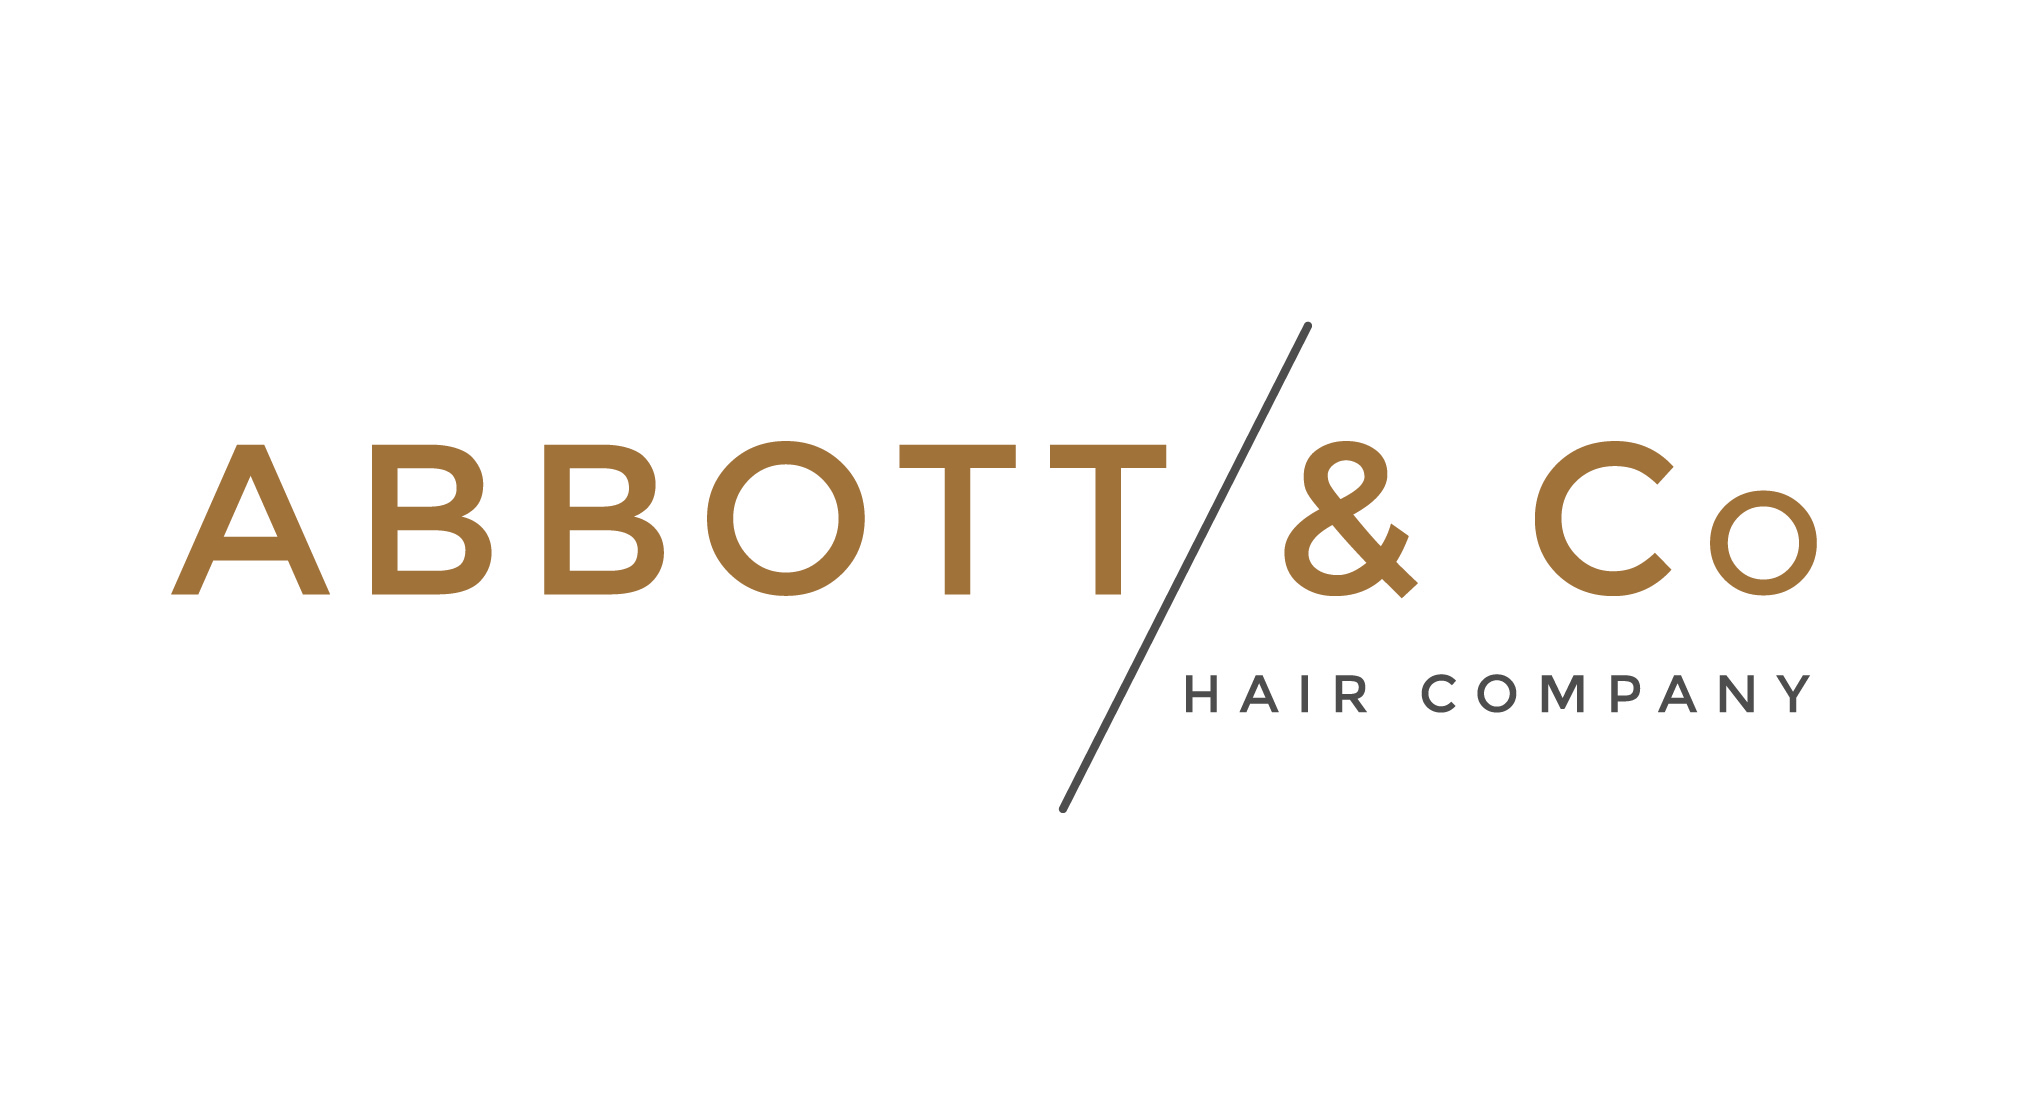 Abbott & Co